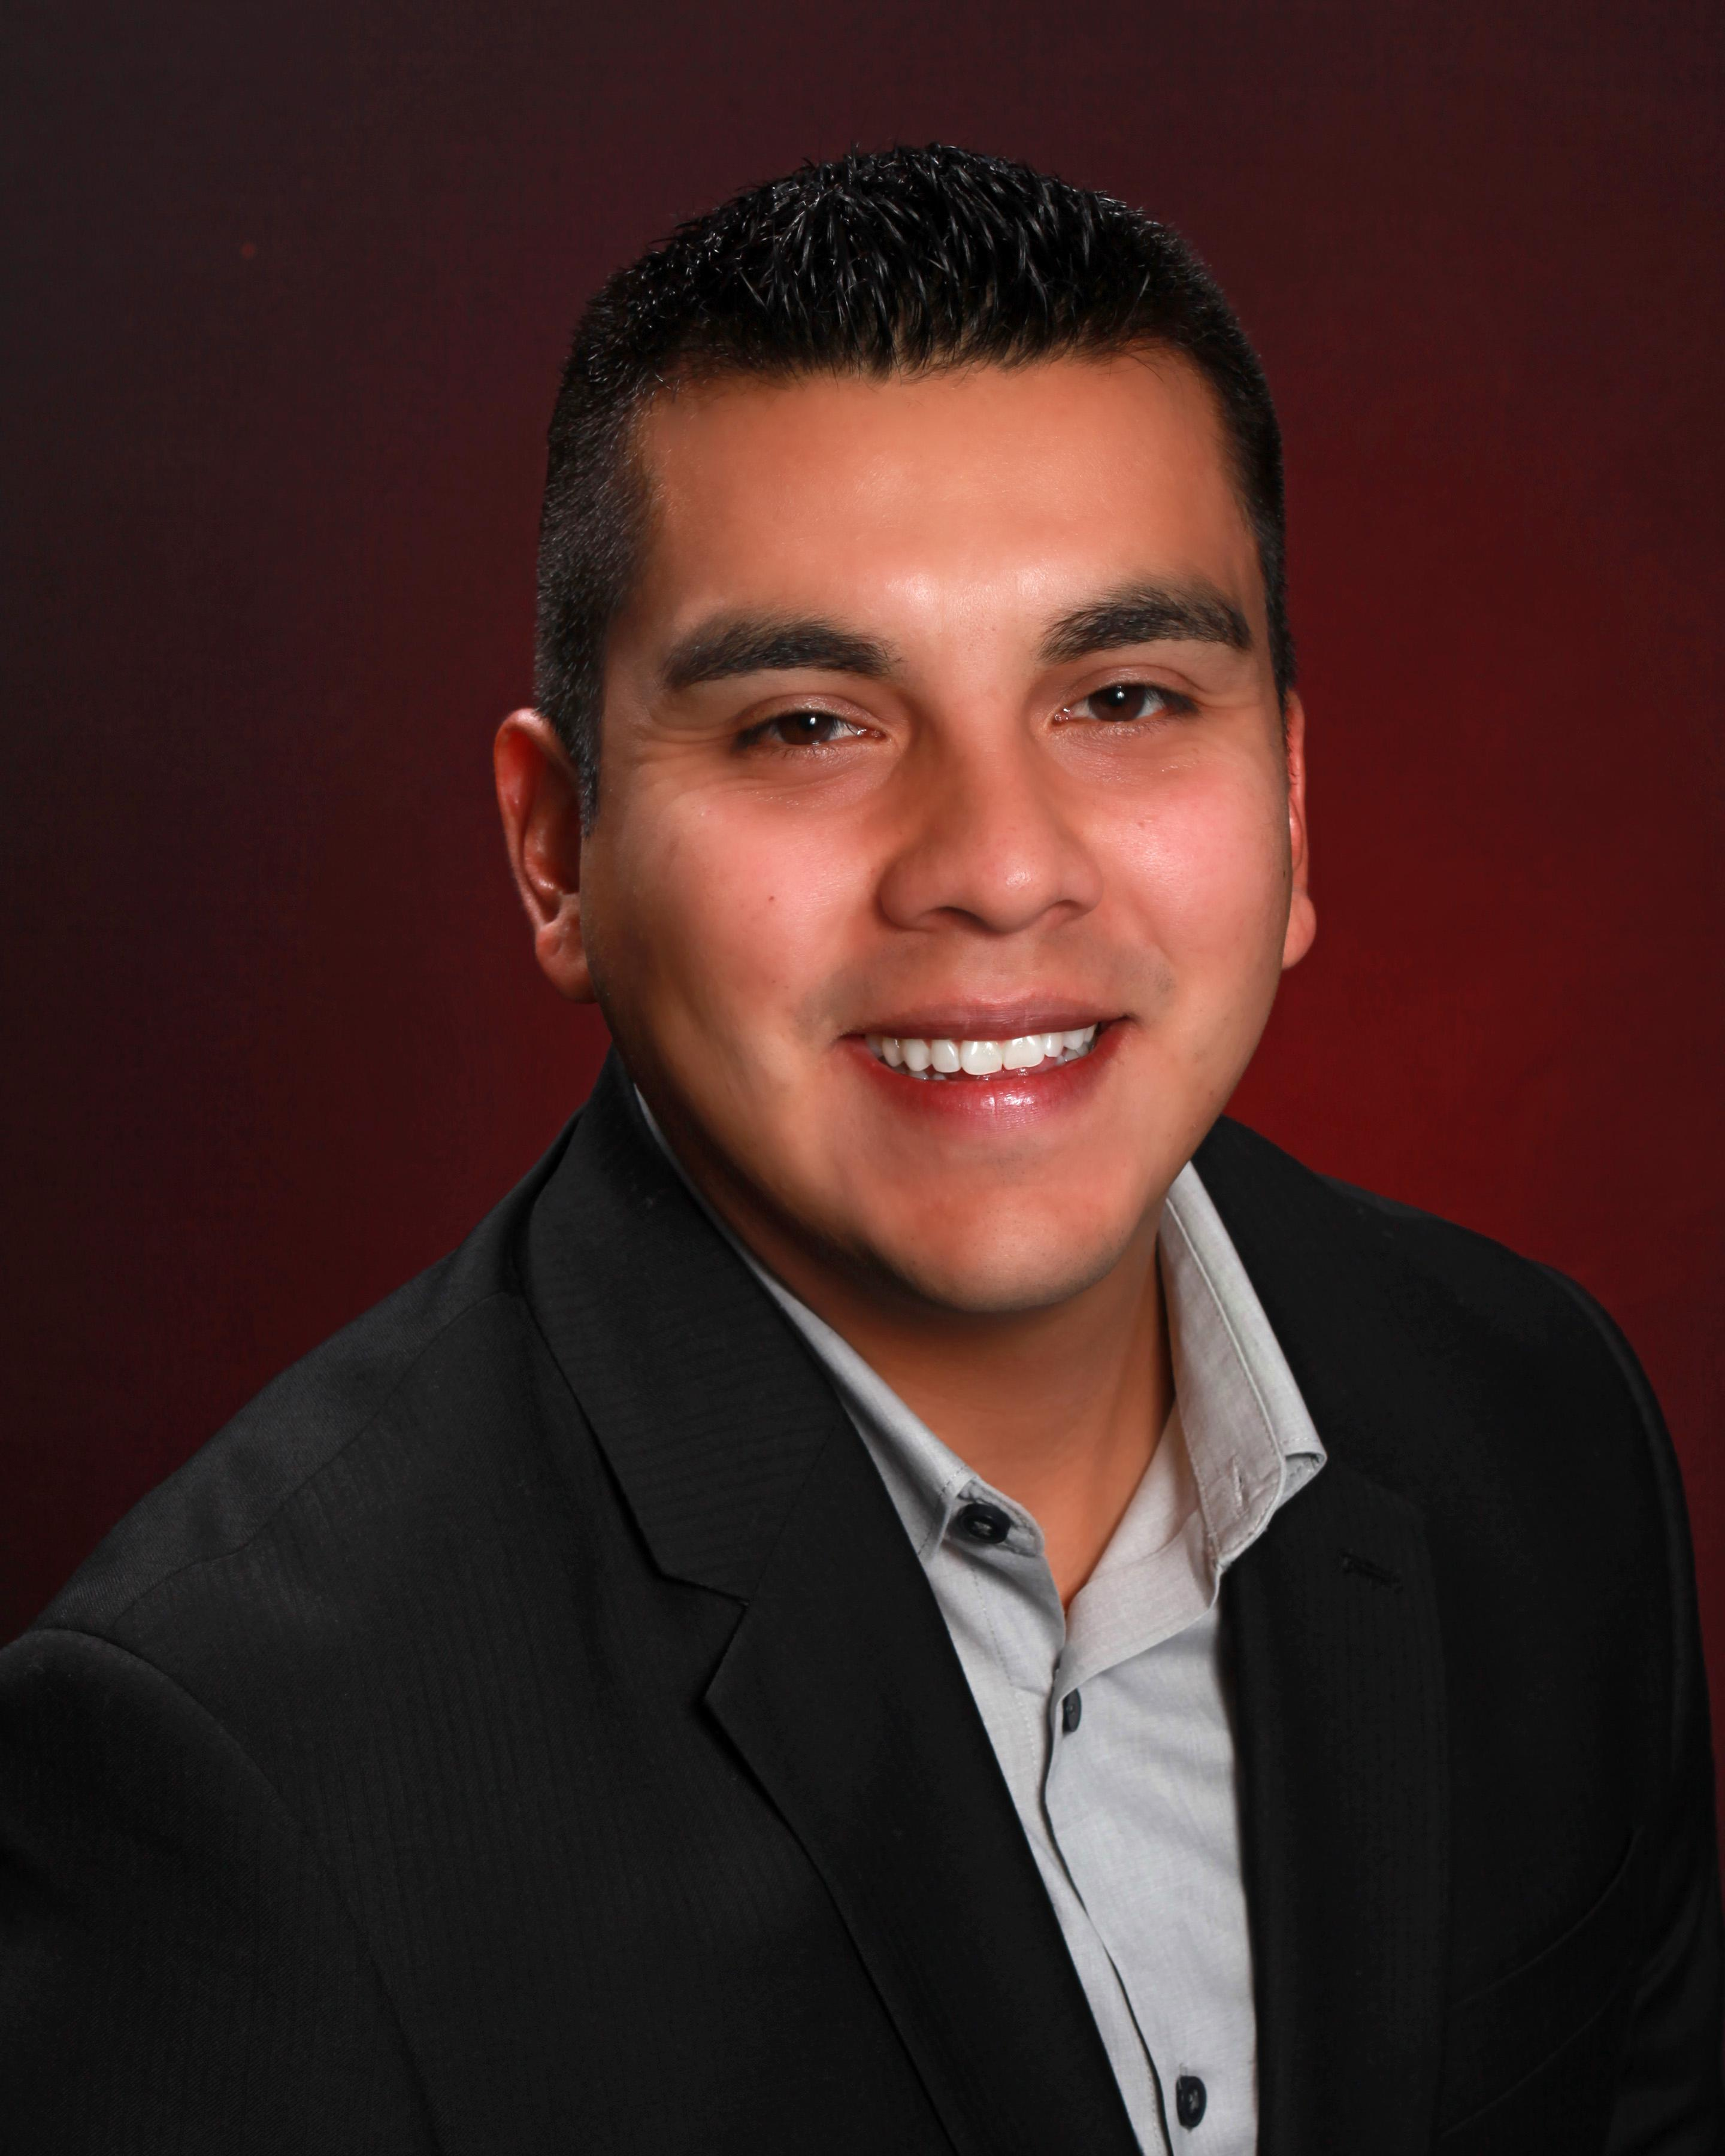 Lalo Herrera Real Estate Professional - Kw Realty